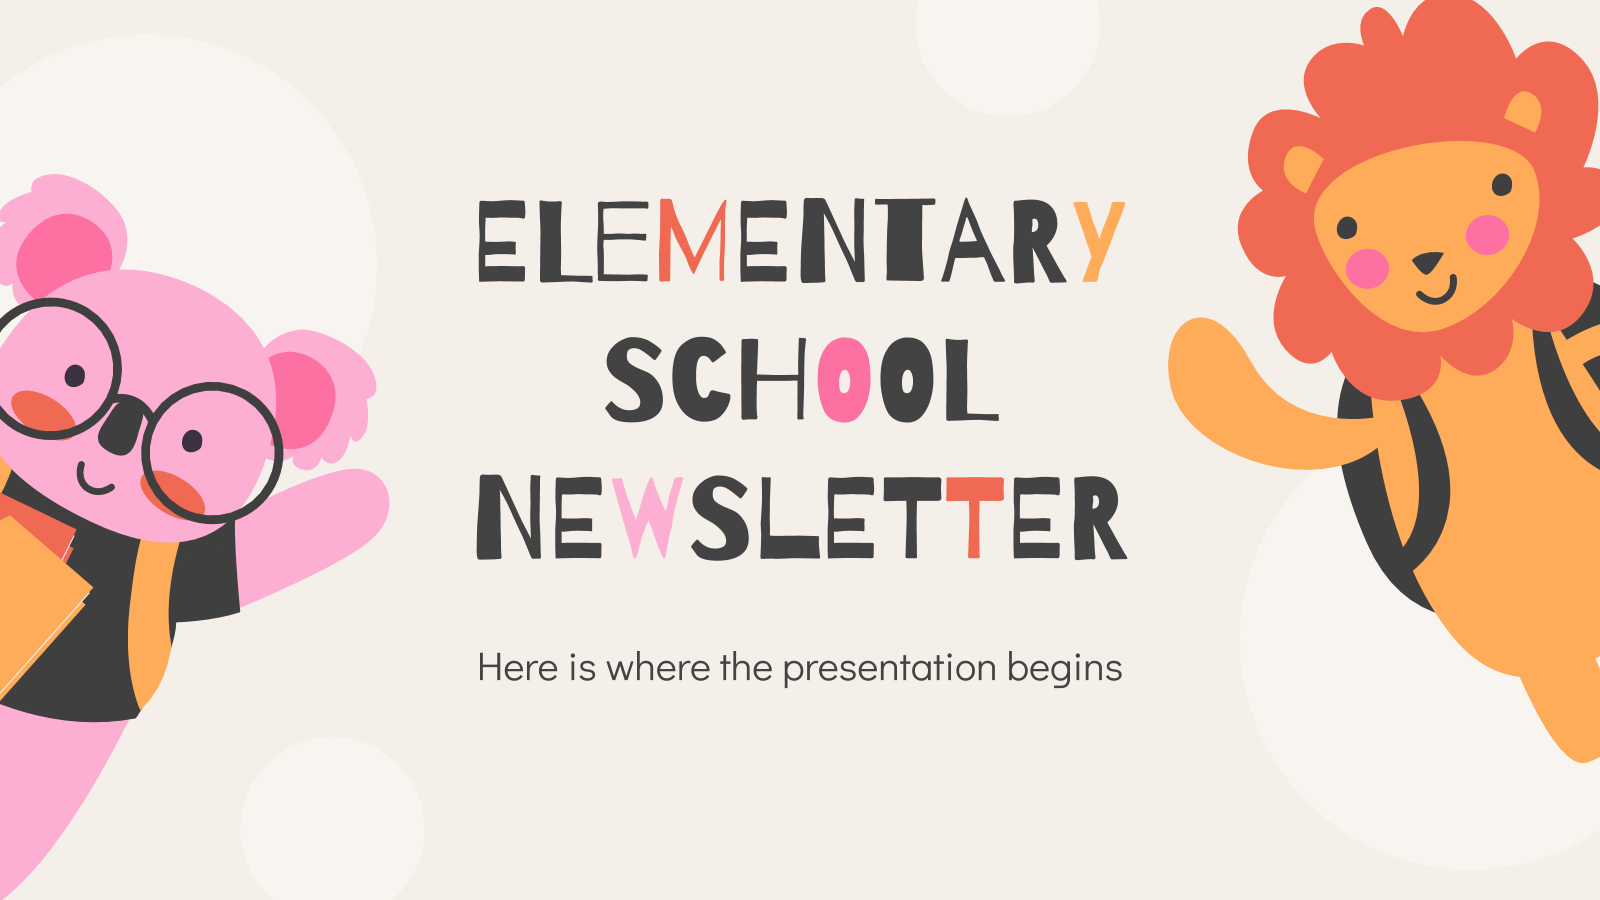 Elementary School Newsletter presentation template